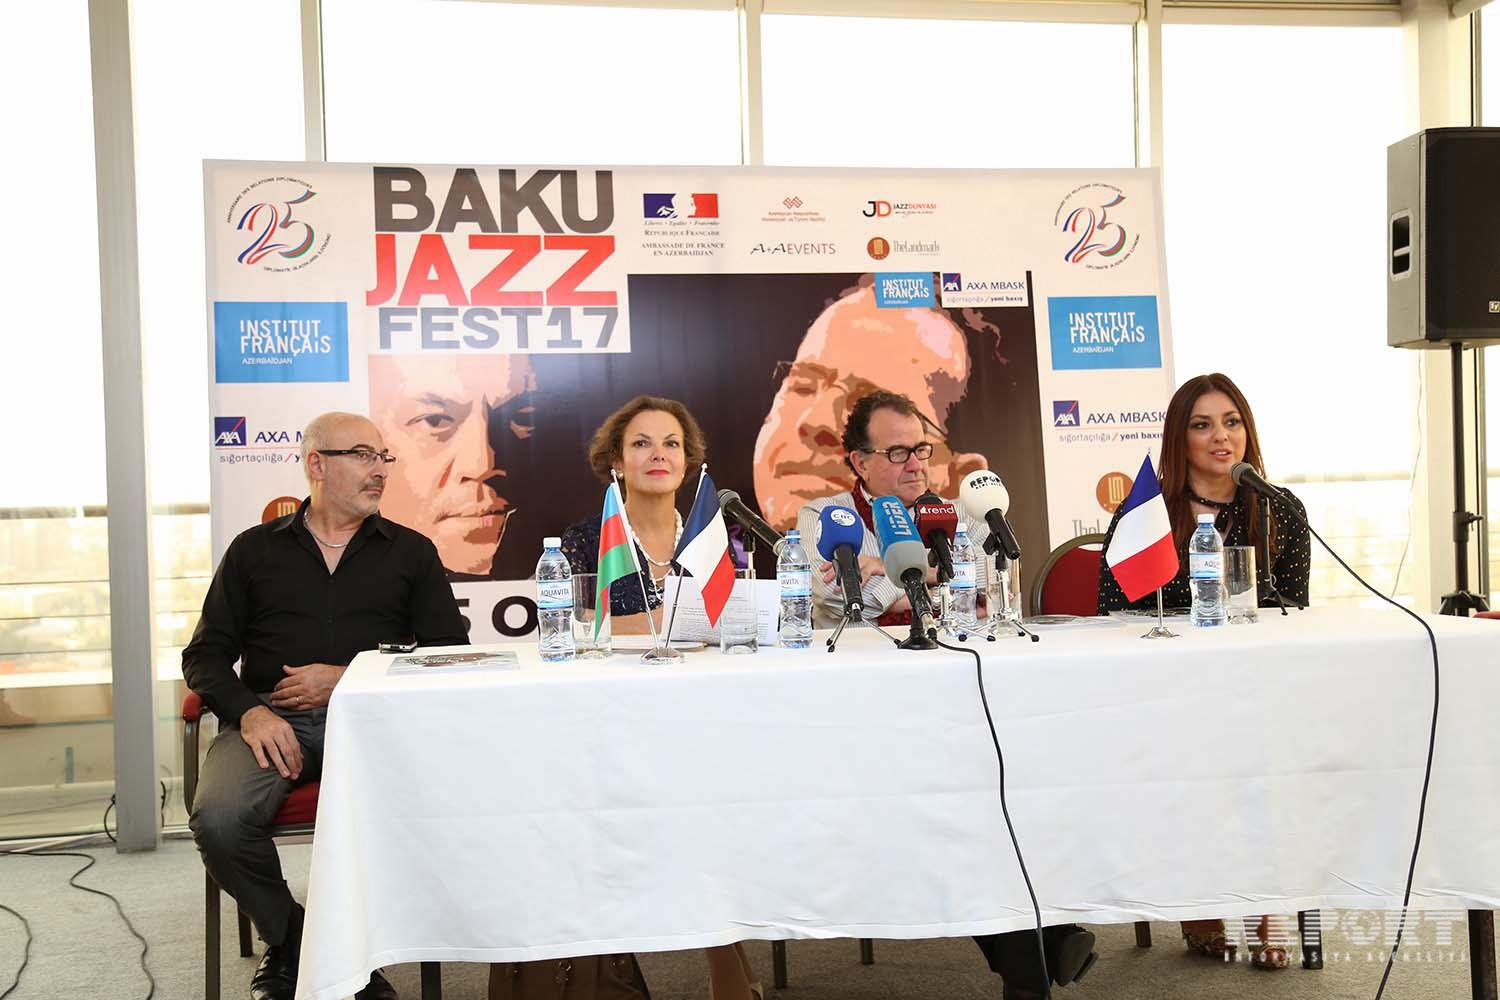 Famous French accordionist arrives in Baku